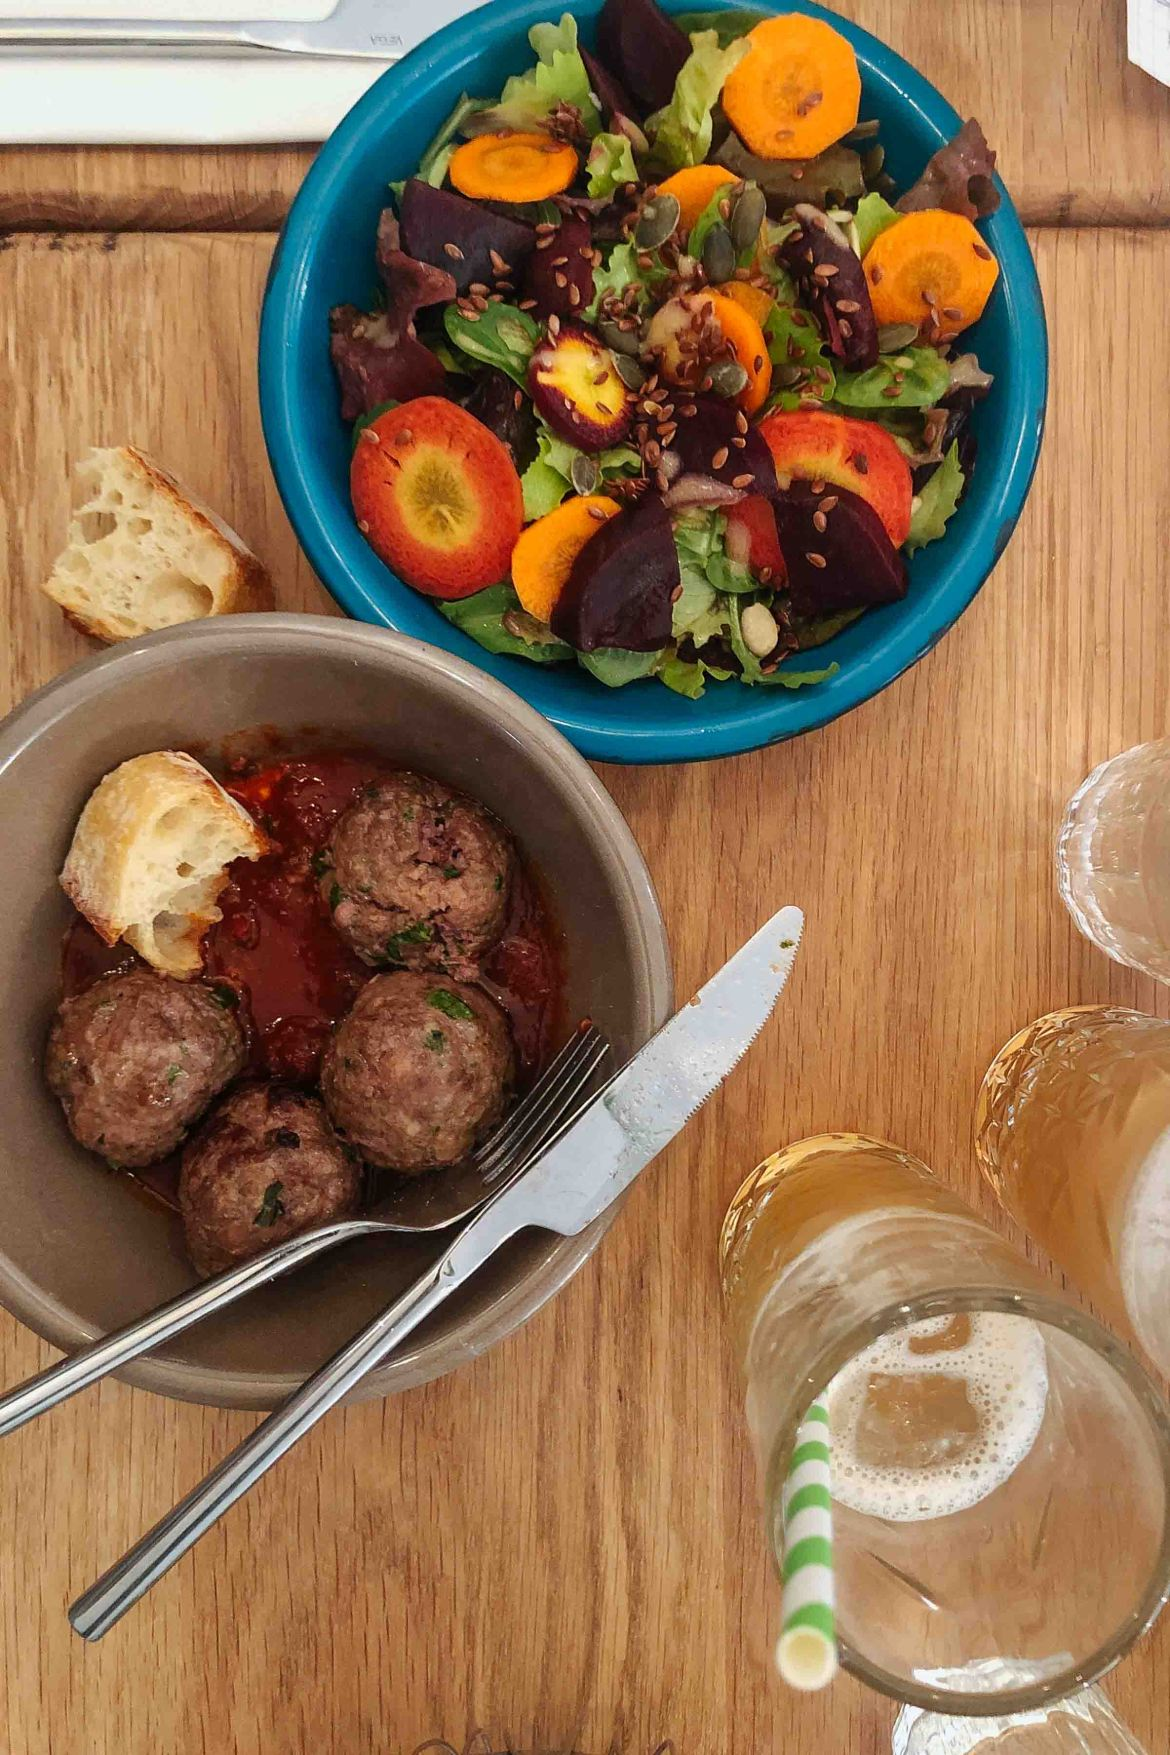 Looking for the best restaurants in Paris? Go to Balls who offers a modular menu of meatballs and sides - photo by kate leahy